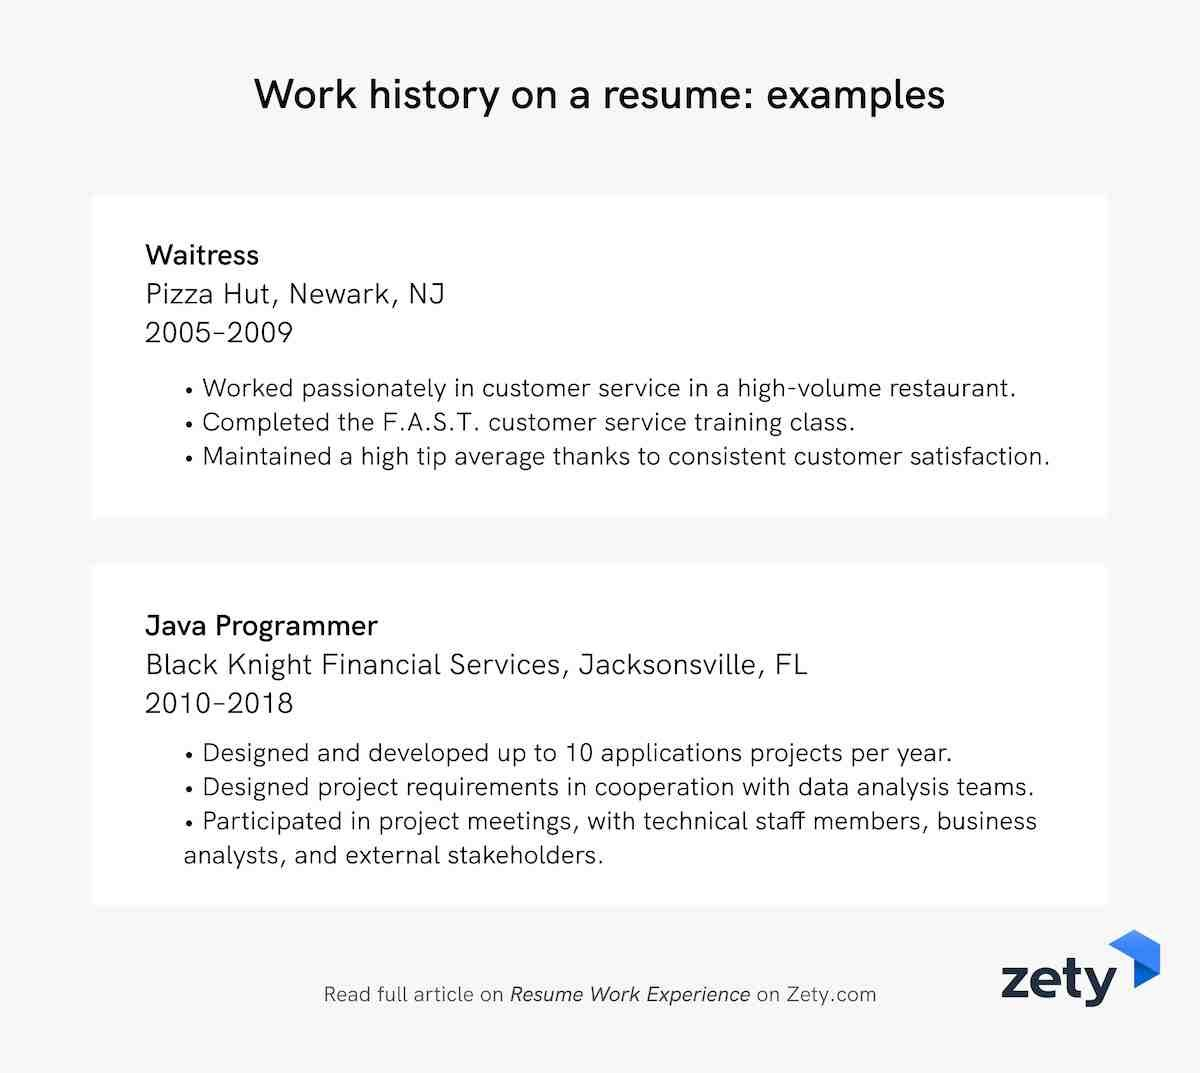 resume work experience history example job descriptions wording for hiring and firing on Resume Resume Wording For Hiring And Firing